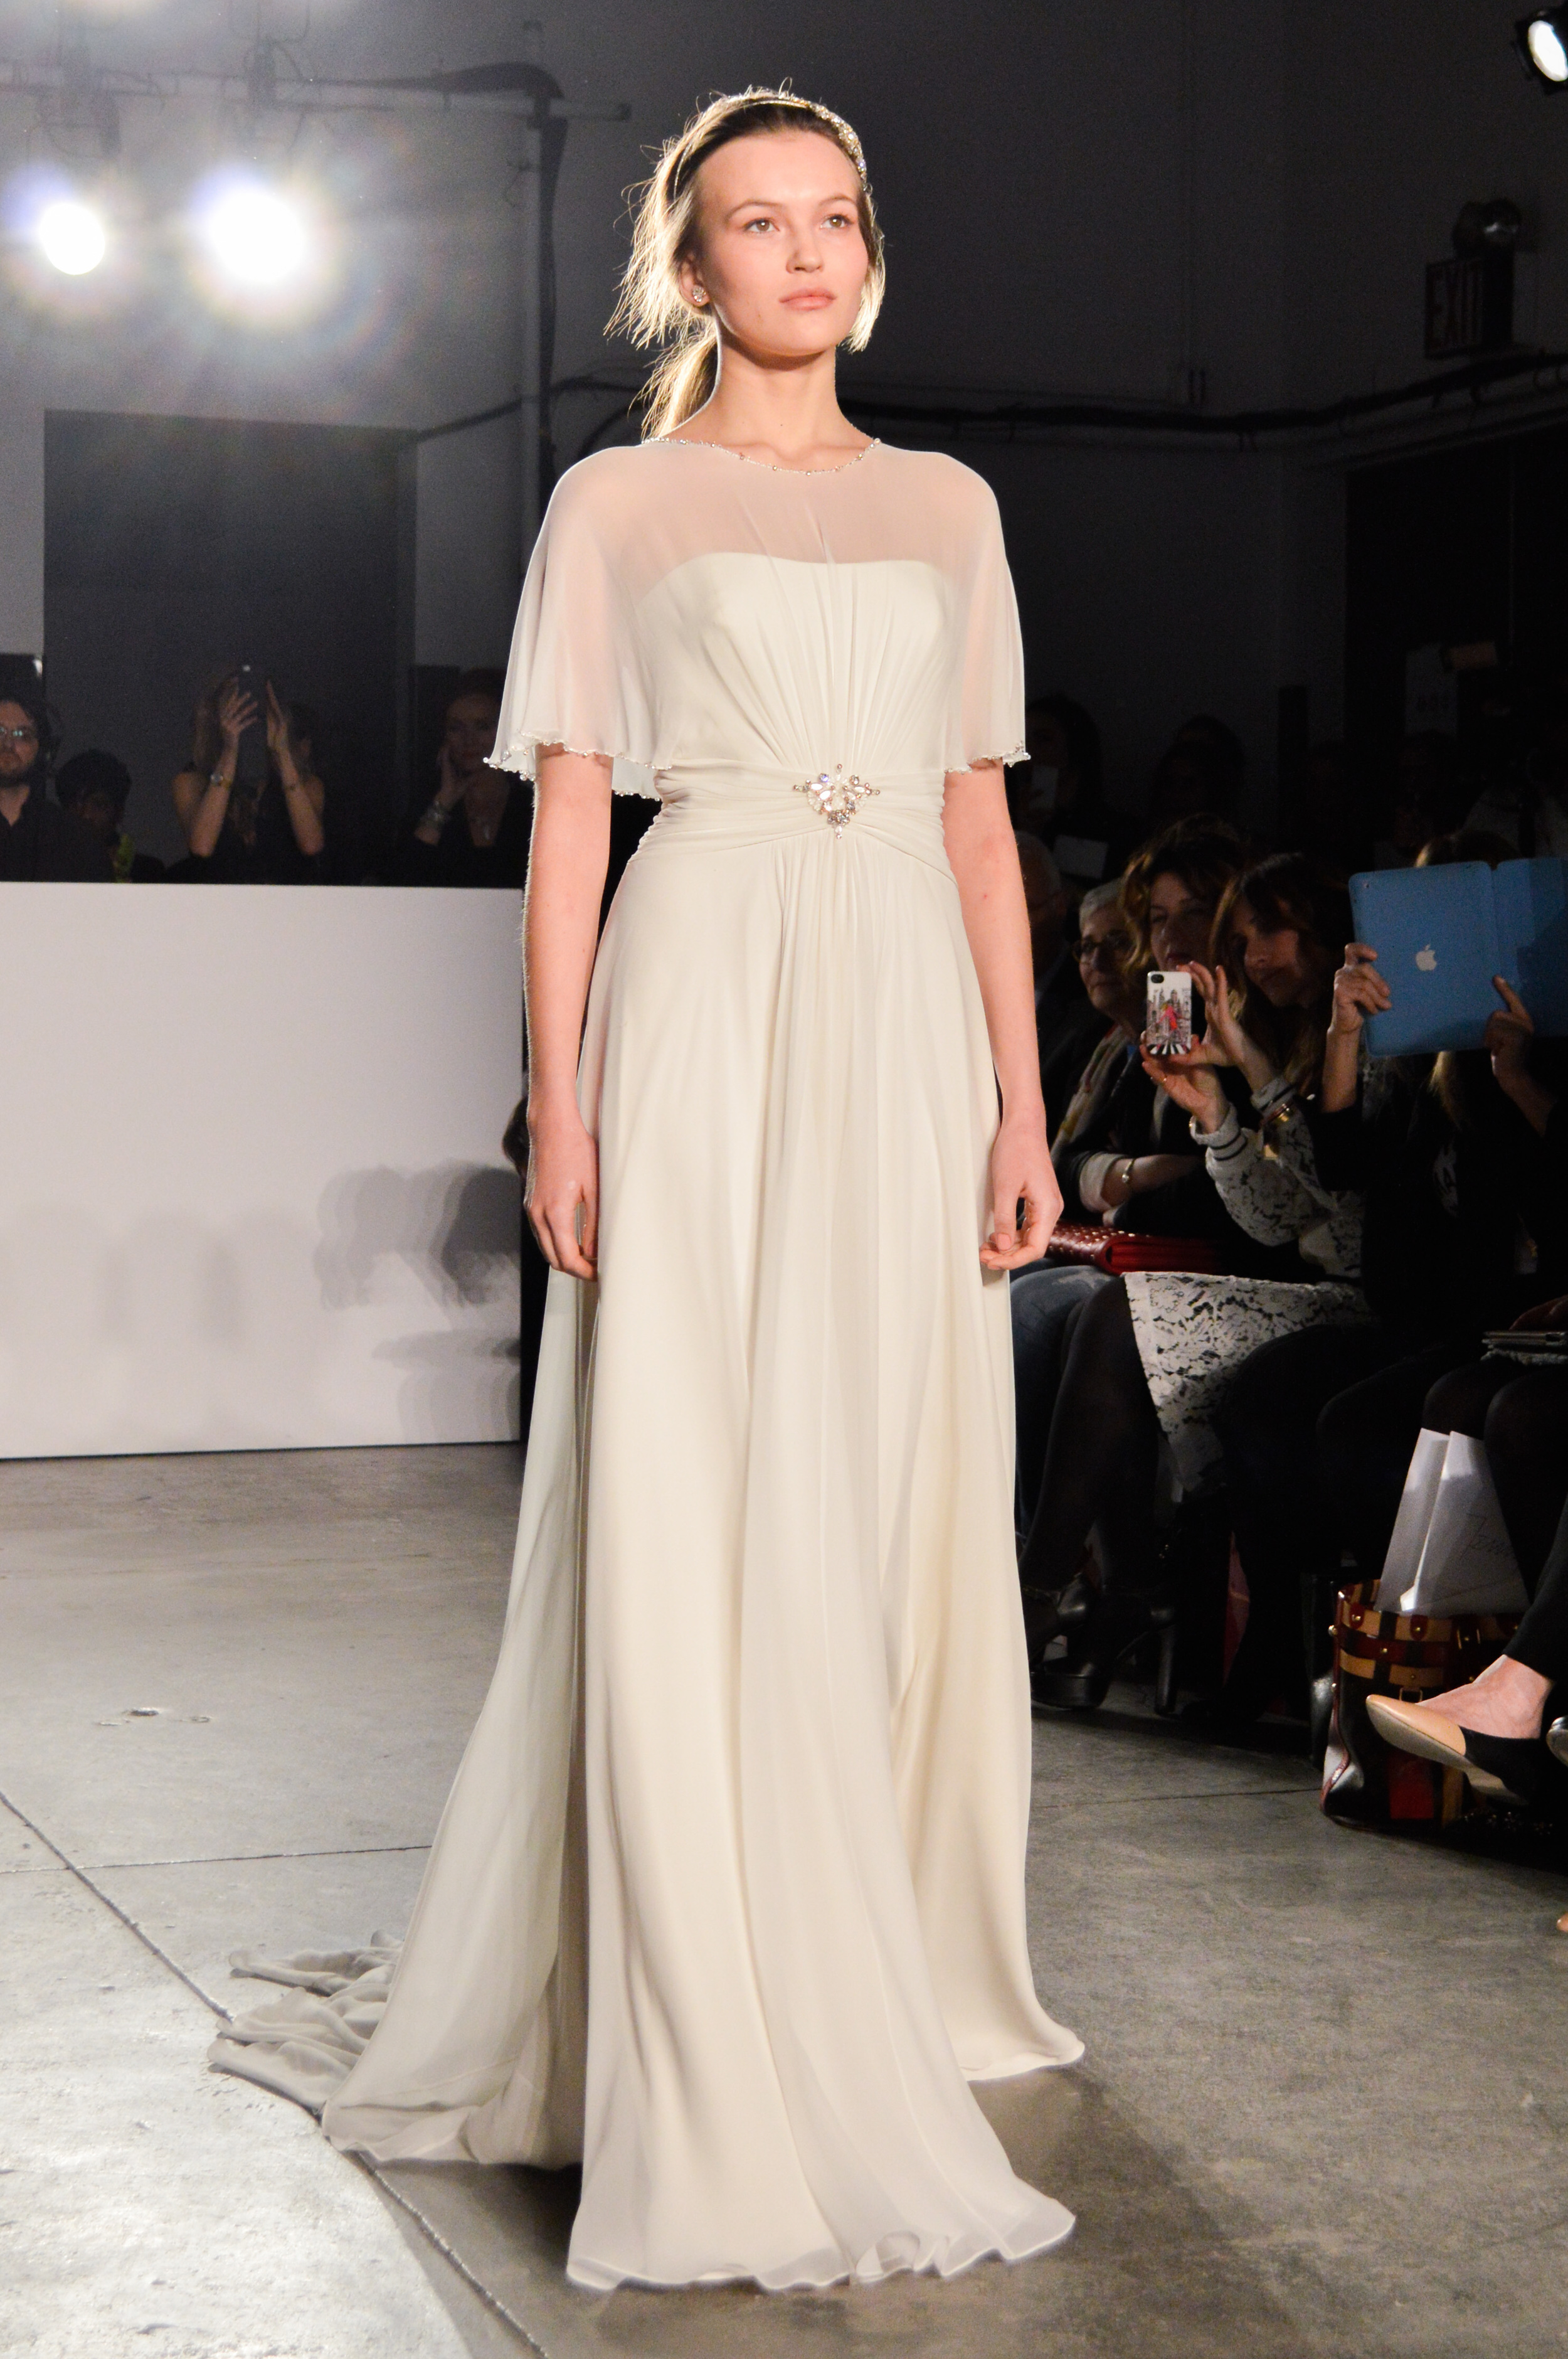 JennyPackham_Bridal Market April 2014-27